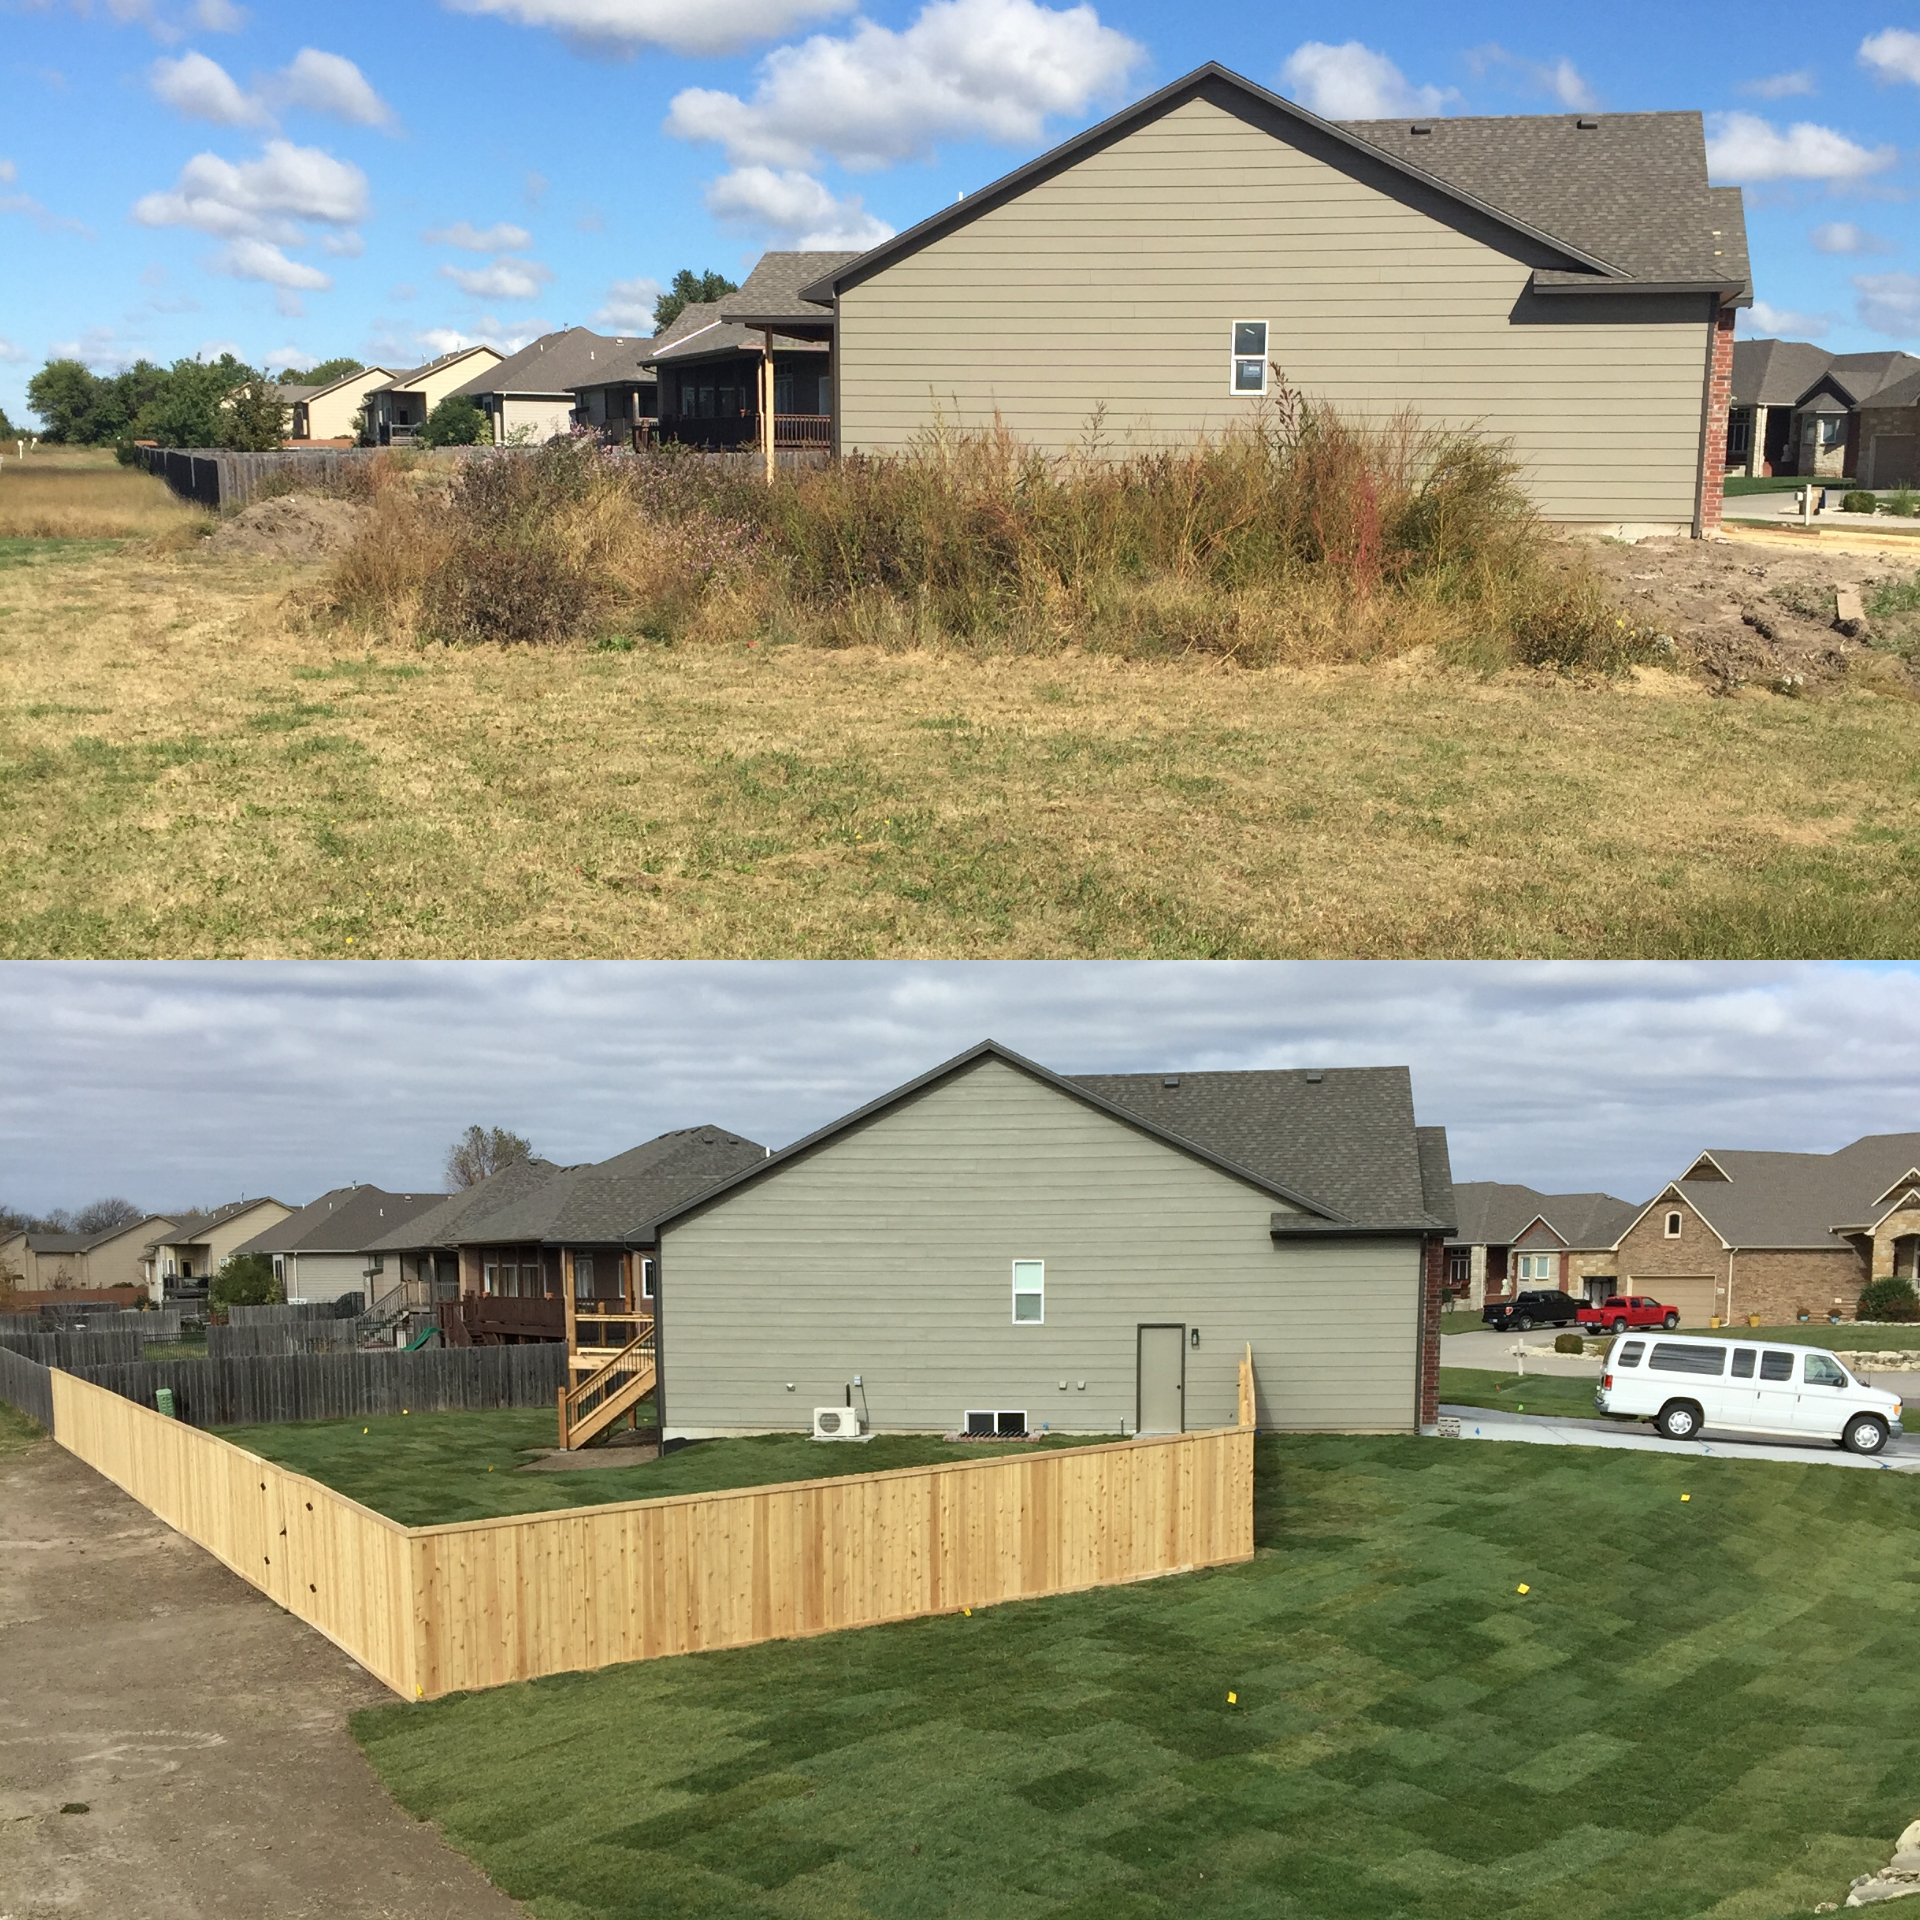 Sallee Lawn Care image 0